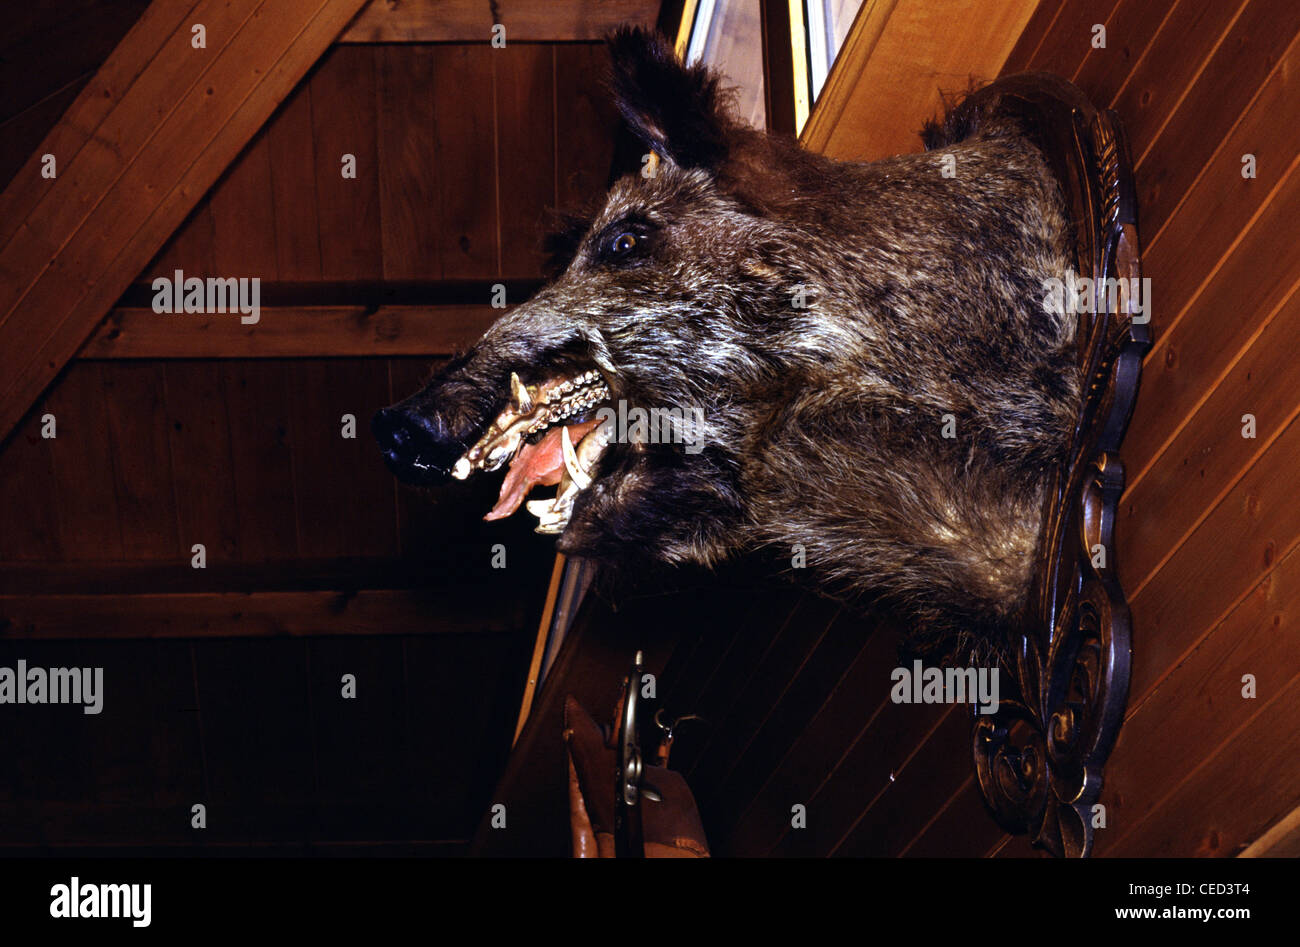 Stuffed Pig hanging on a wooden wall in a ski resort accommodation Alps Switzerland - Stock Image